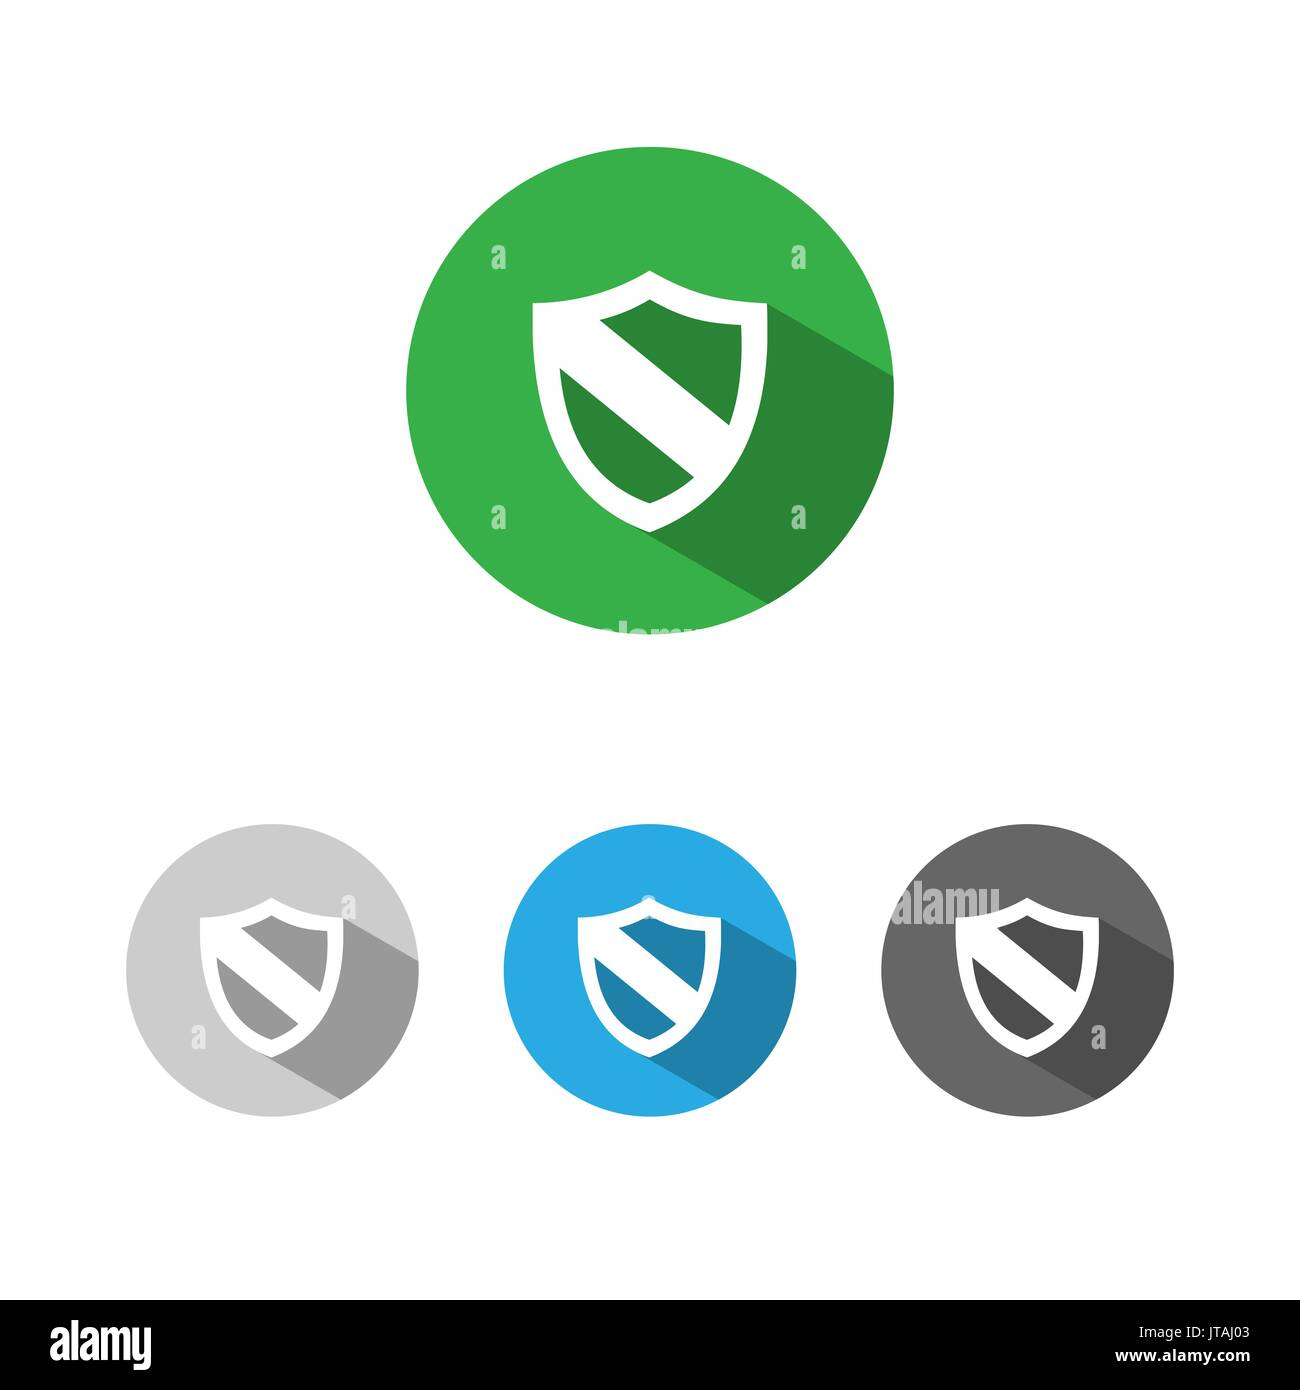 Protection shield icon with shade on colored buttons - Stock Image